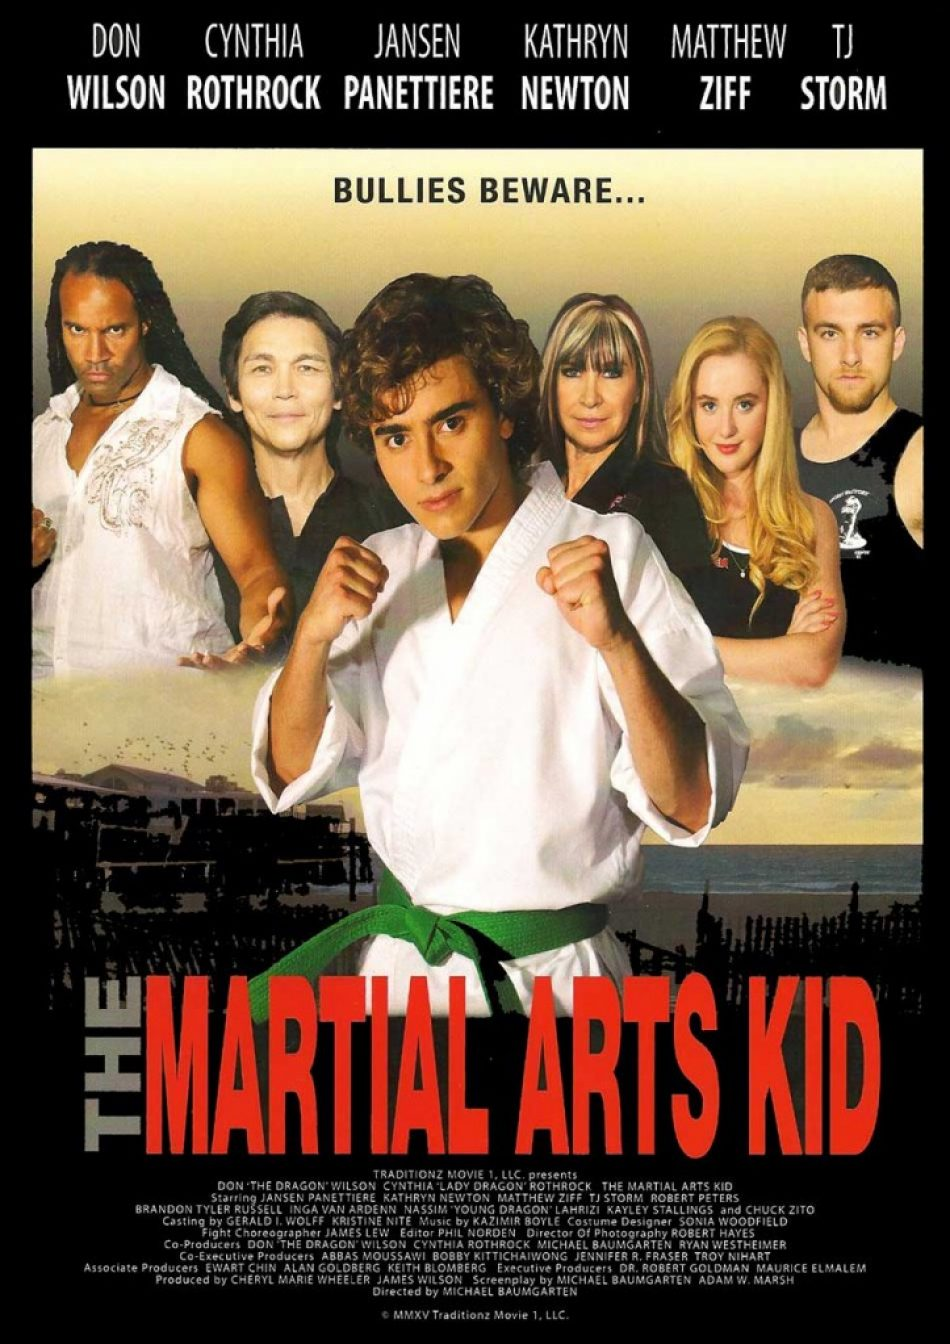 The Martial Arts Kid New Poster